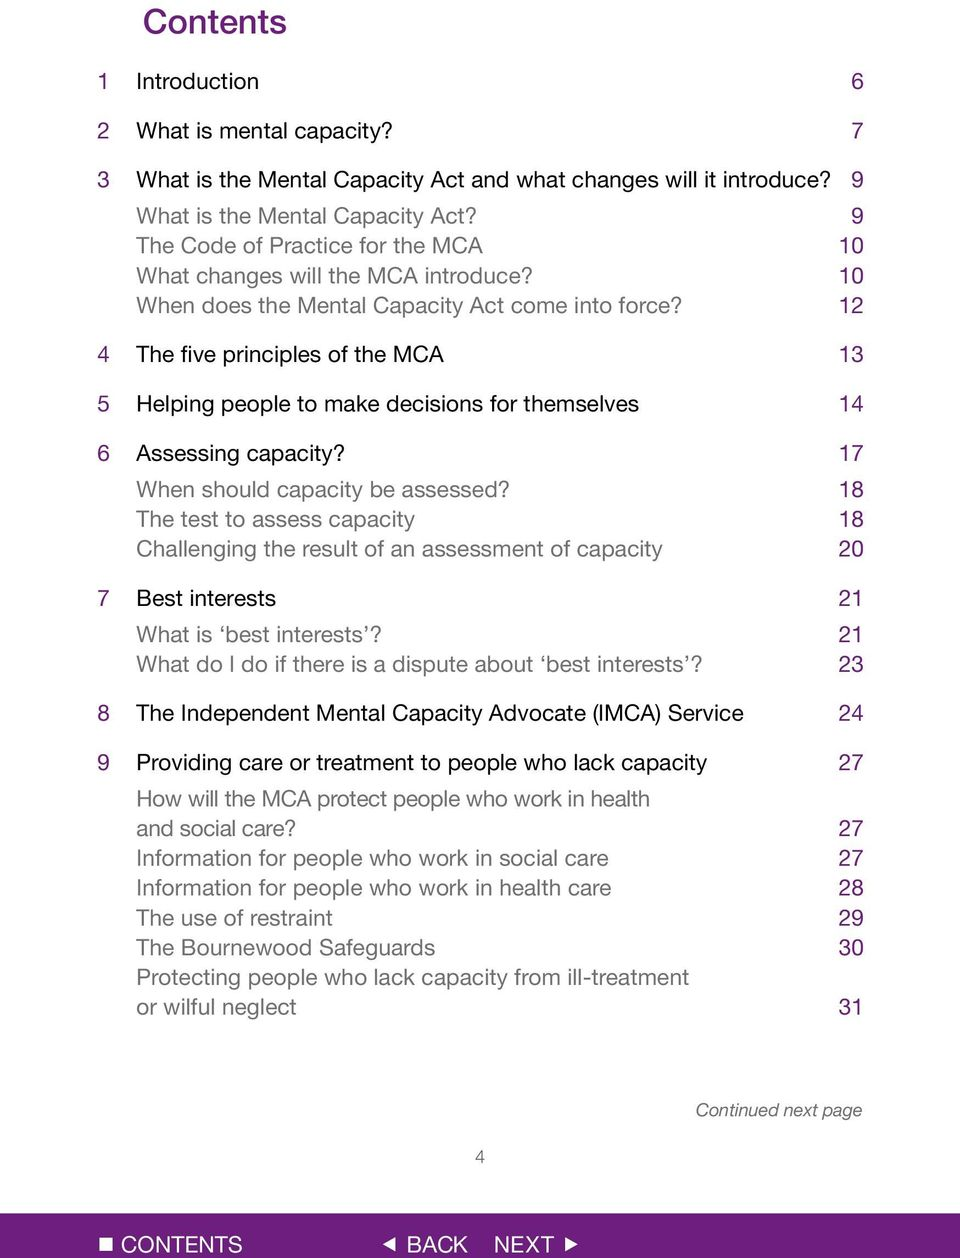 12 4 The five principles of the MCA 13 5 Helping people to make decisions for themselves 14 6 Assessing capacity? 17 When should capacity be assessed?